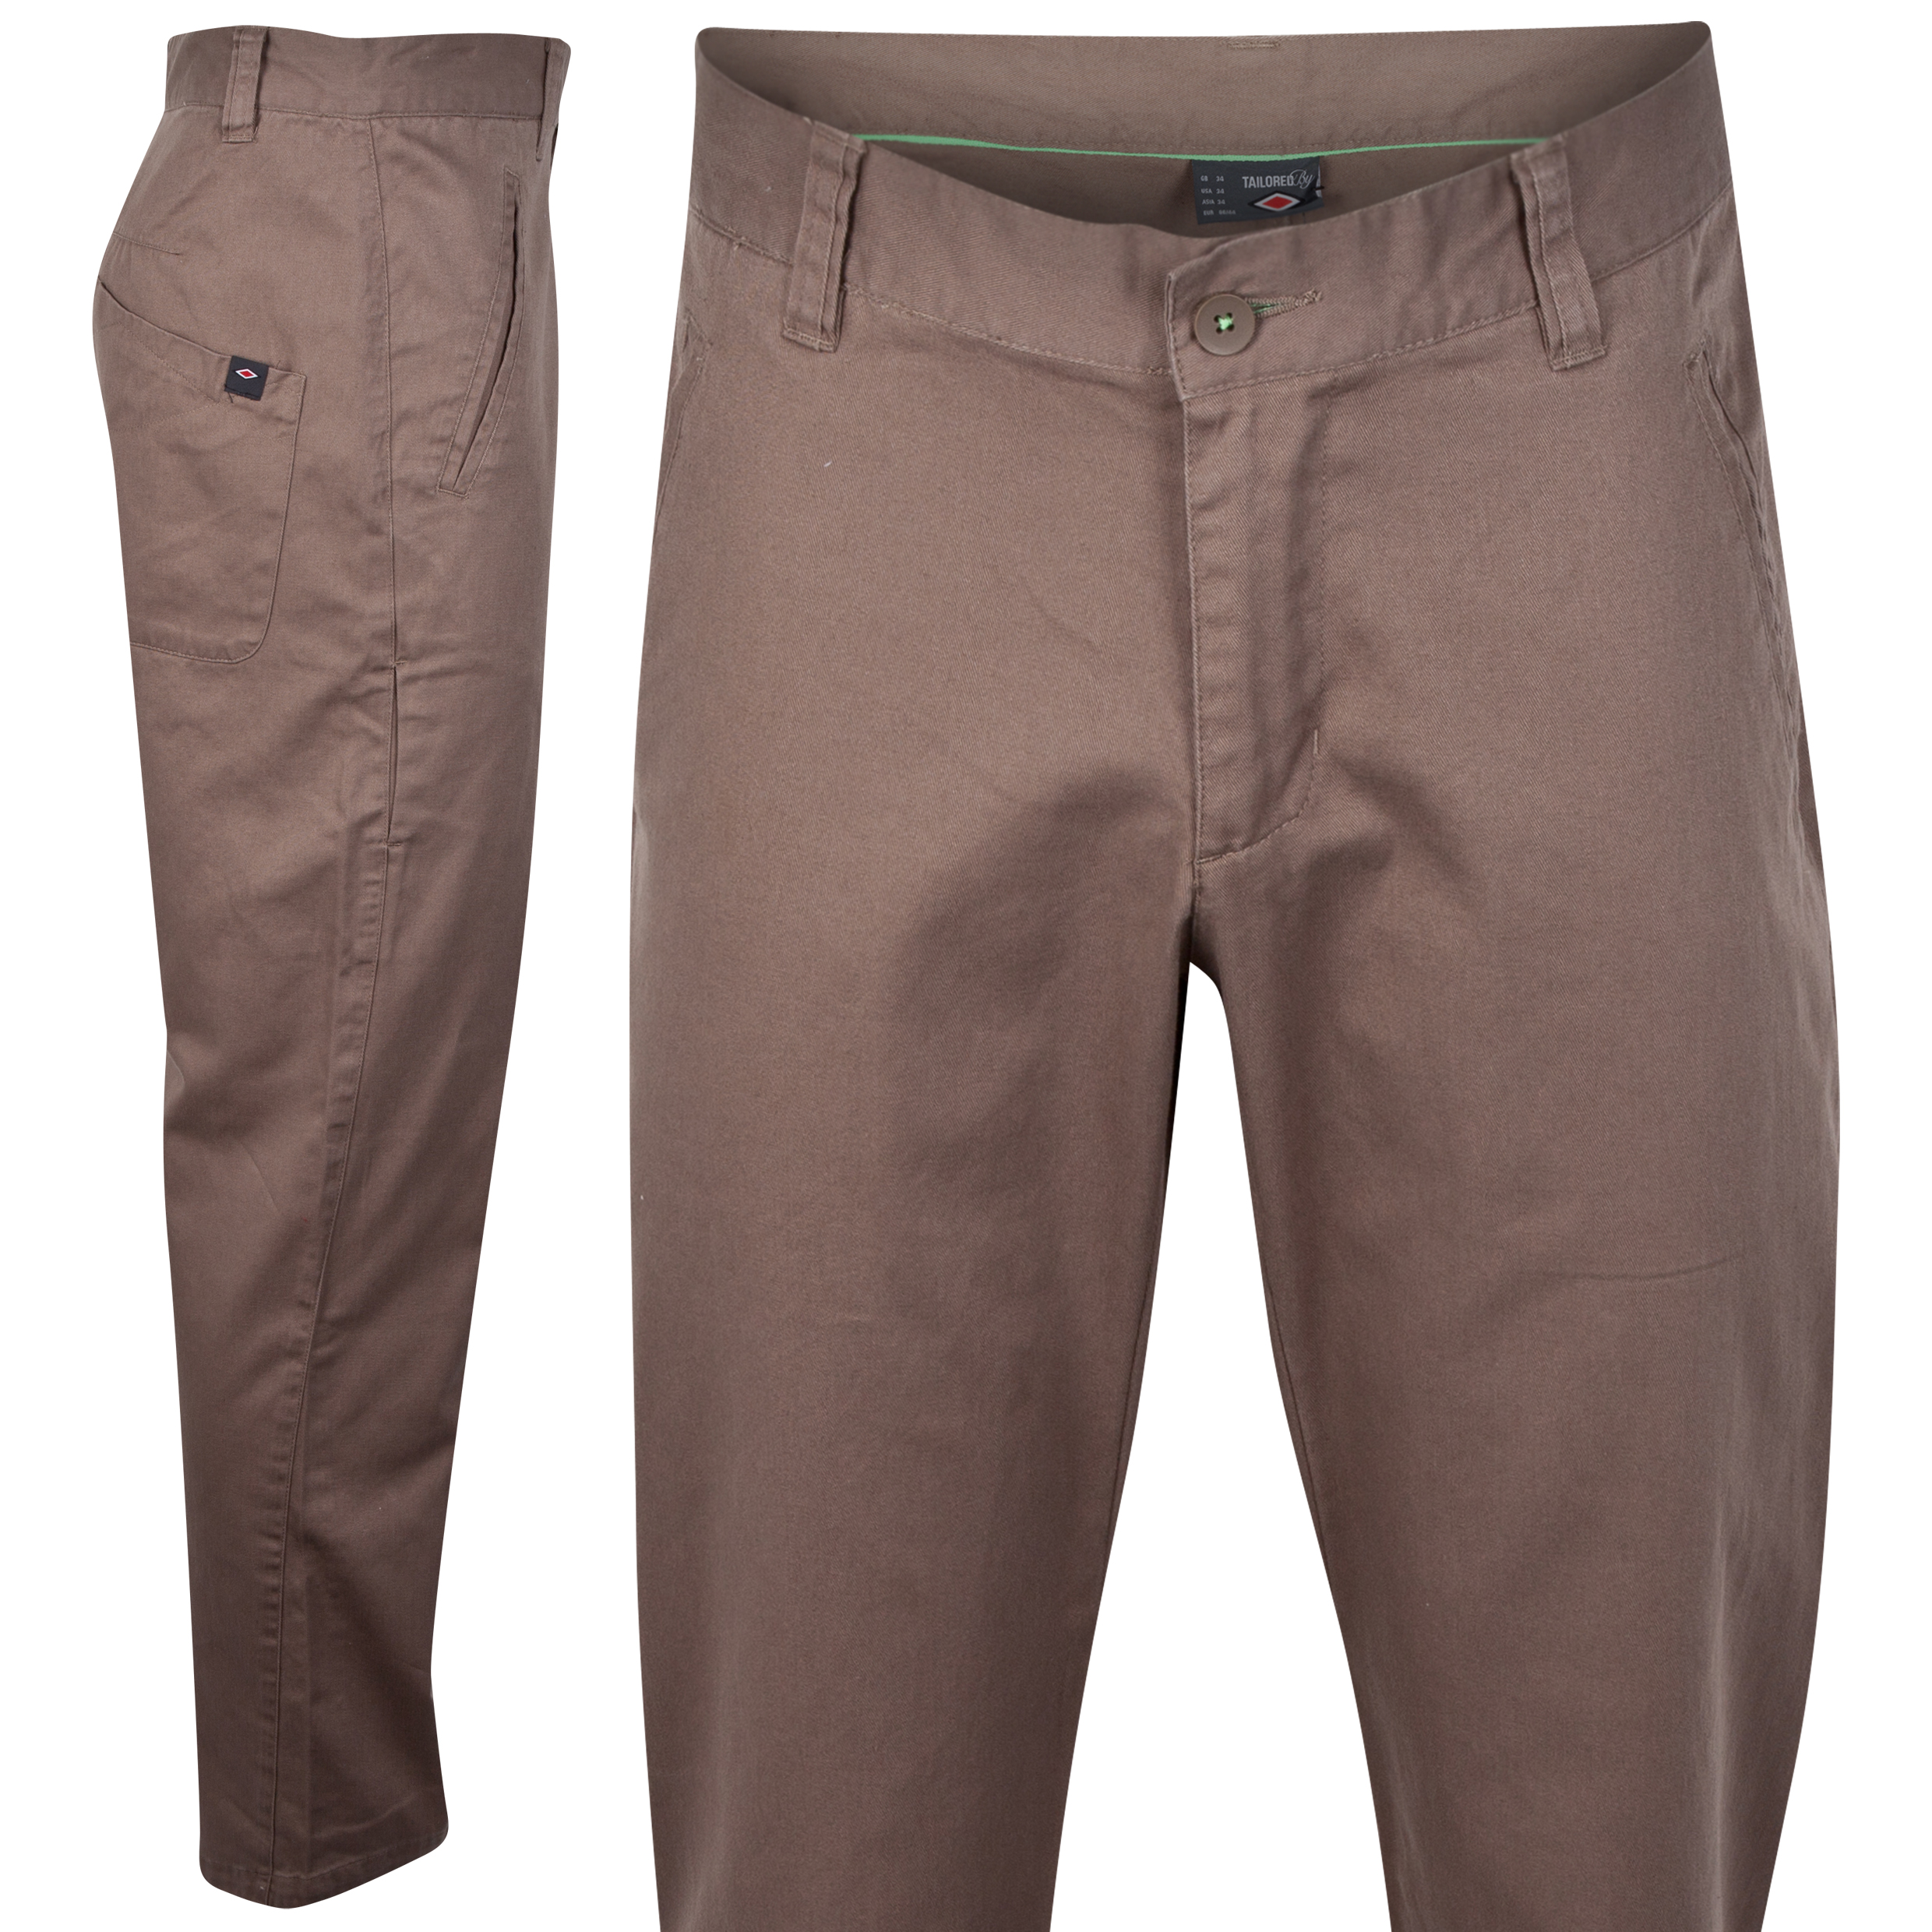 Umbro Articulated Woven Pant - Walnut